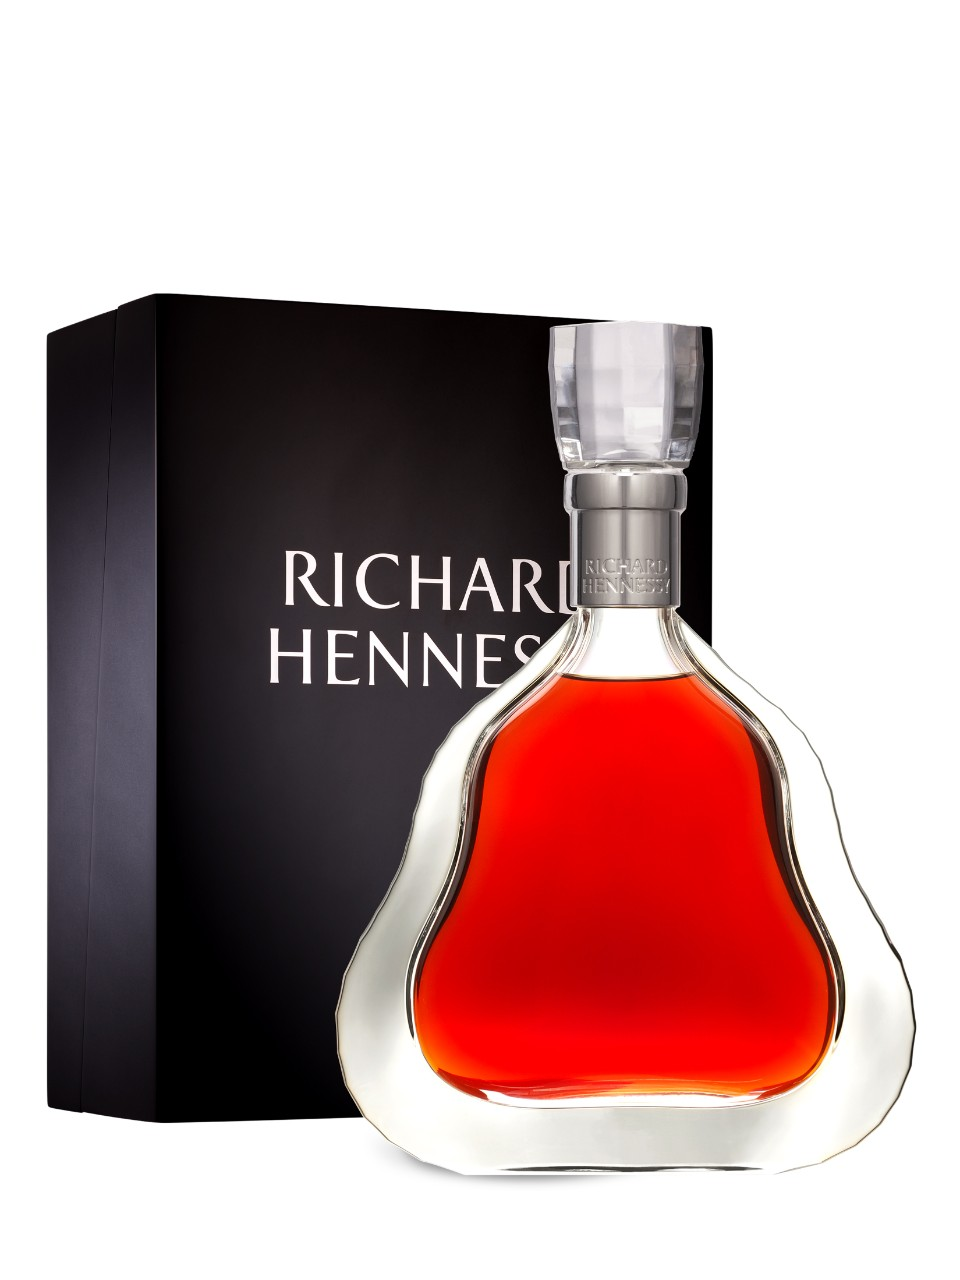 "Lastly we have Richard Hennessy. This Bottle is becoming increasingly rare due to the ""eau de vie"" (water of life.) ""Eau de vie"" is the brandy that goes into the blending process, which helps make this specific cognac. This particular brandy is becoming increasingly rare with every bottle that is being made, and soon will become extinct. A bottle of Richard Hennessy can be purchased from anywhere between $4,800 to $7,000. If you are looking to buy this bottle at the Fizz, be prepared to drop $14,000 on it!"